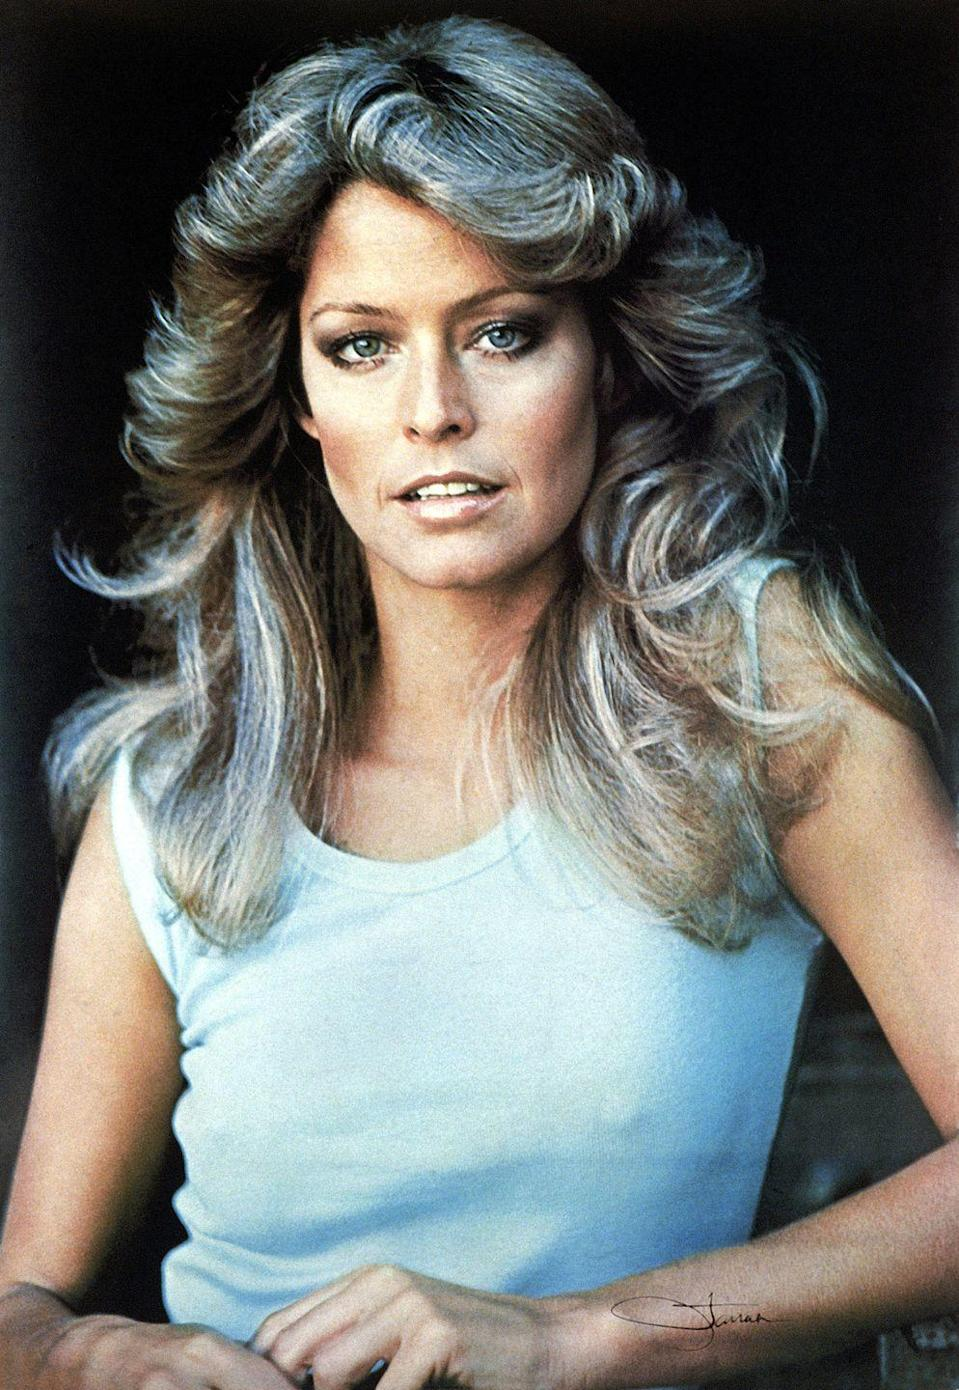 """<p>Farrah Fawcett and her unforgettable hair on <em><a href=""""http://www.goodhousekeeping.com/beauty/anti-aging/news/a35140/jaclyn-smith-2015/"""" rel=""""nofollow noopener"""" target=""""_blank"""" data-ylk=""""slk:Charlie's Angels"""" class=""""link rapid-noclick-resp"""">Charlie's Angels</a></em> inspired countless women to highlight their hair and blow it out into full, sweeping waves.</p>"""